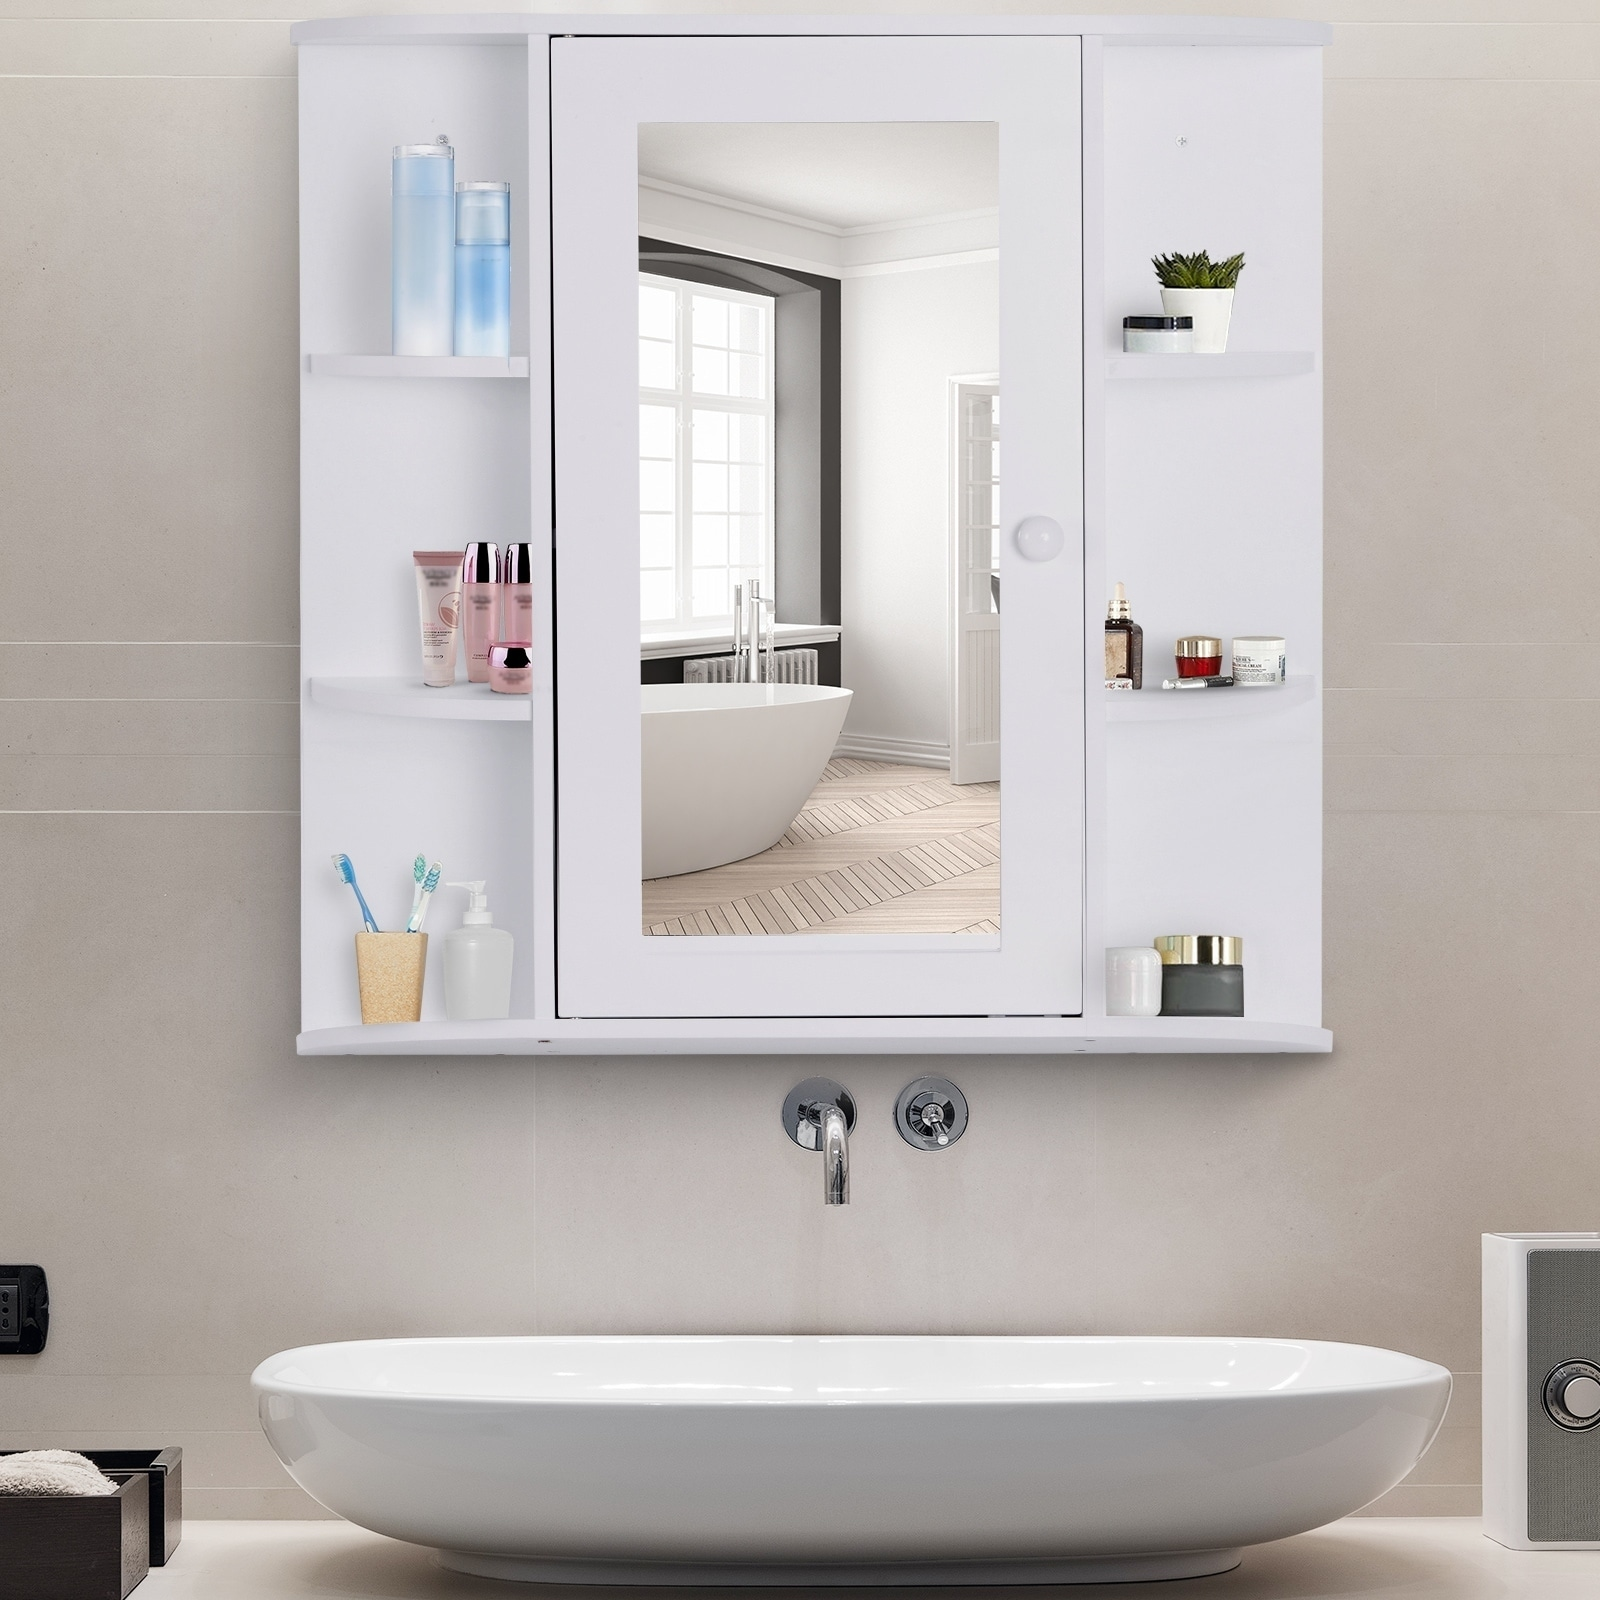 Homcom Over The Sink Bathroom Storage Organizer Cabinet With Mirrored Door And Multiple Shelves White Overstock 30695539